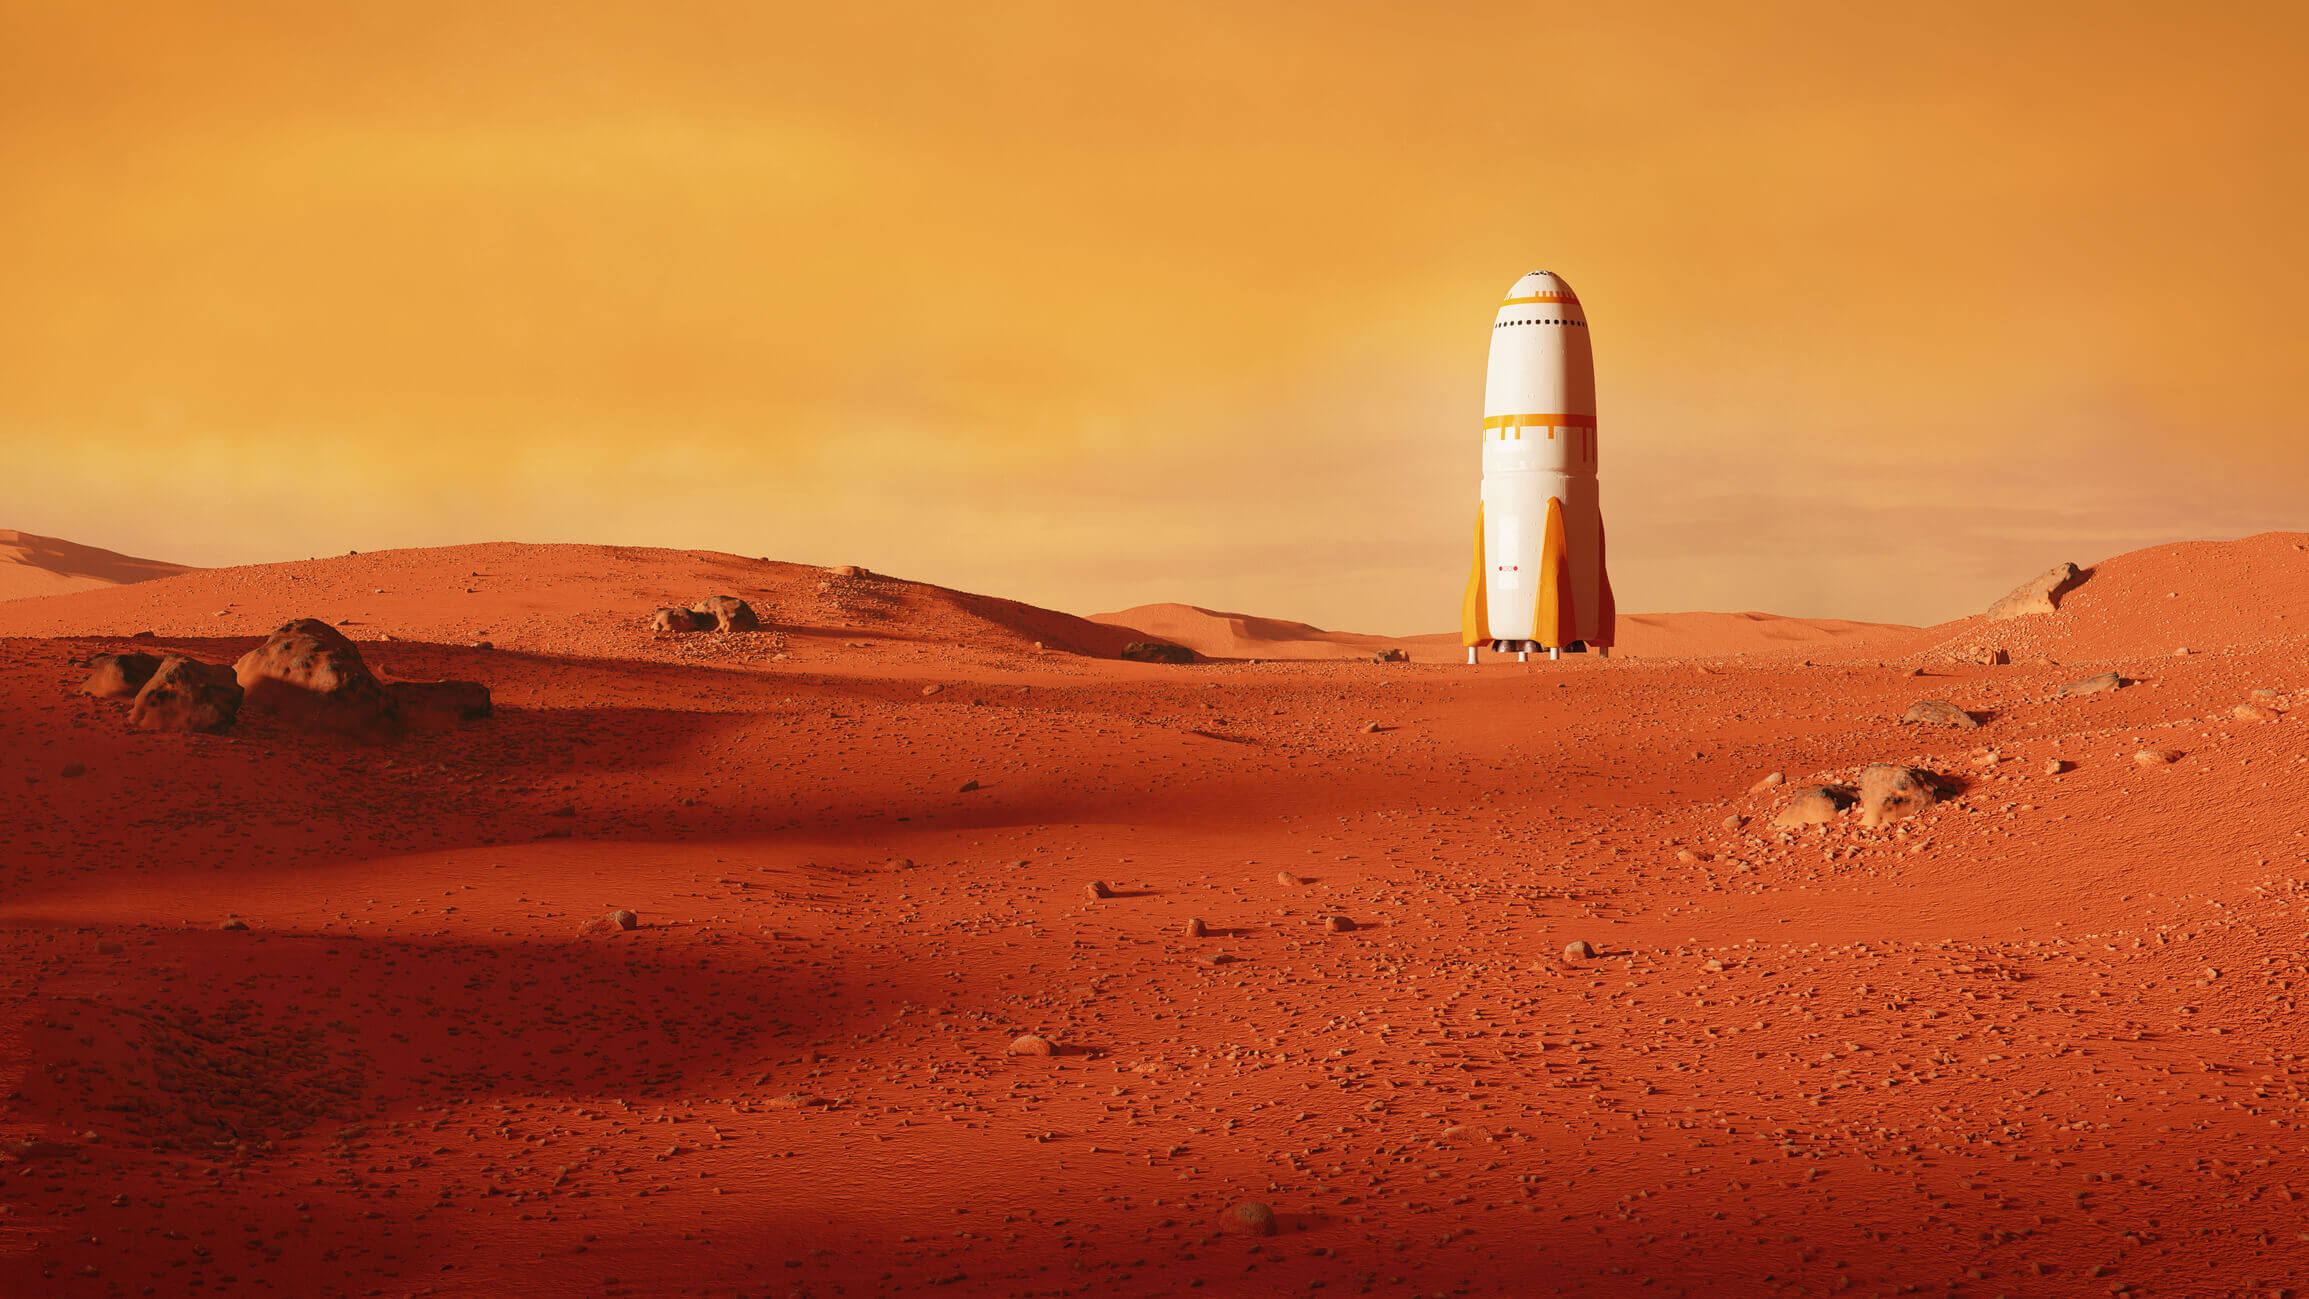 Life on Mars Discovered to be Better with RPost